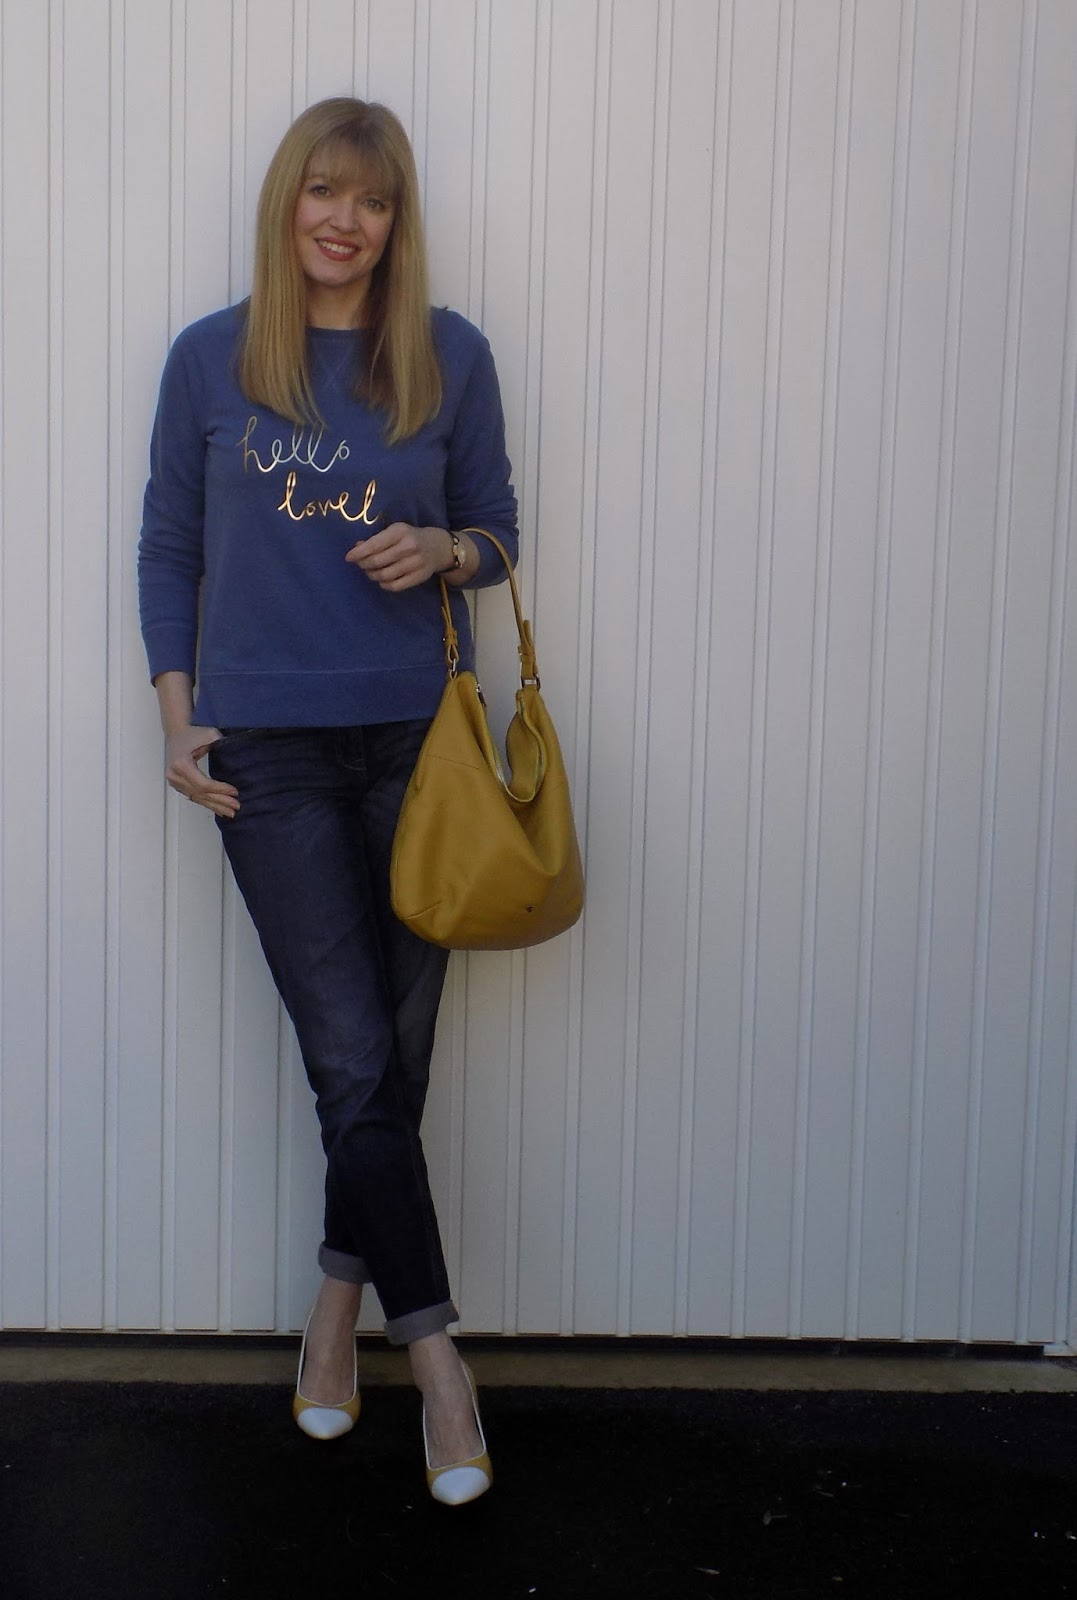 Boden slogan hello lovely sweatshirt and yellow Yull shoes